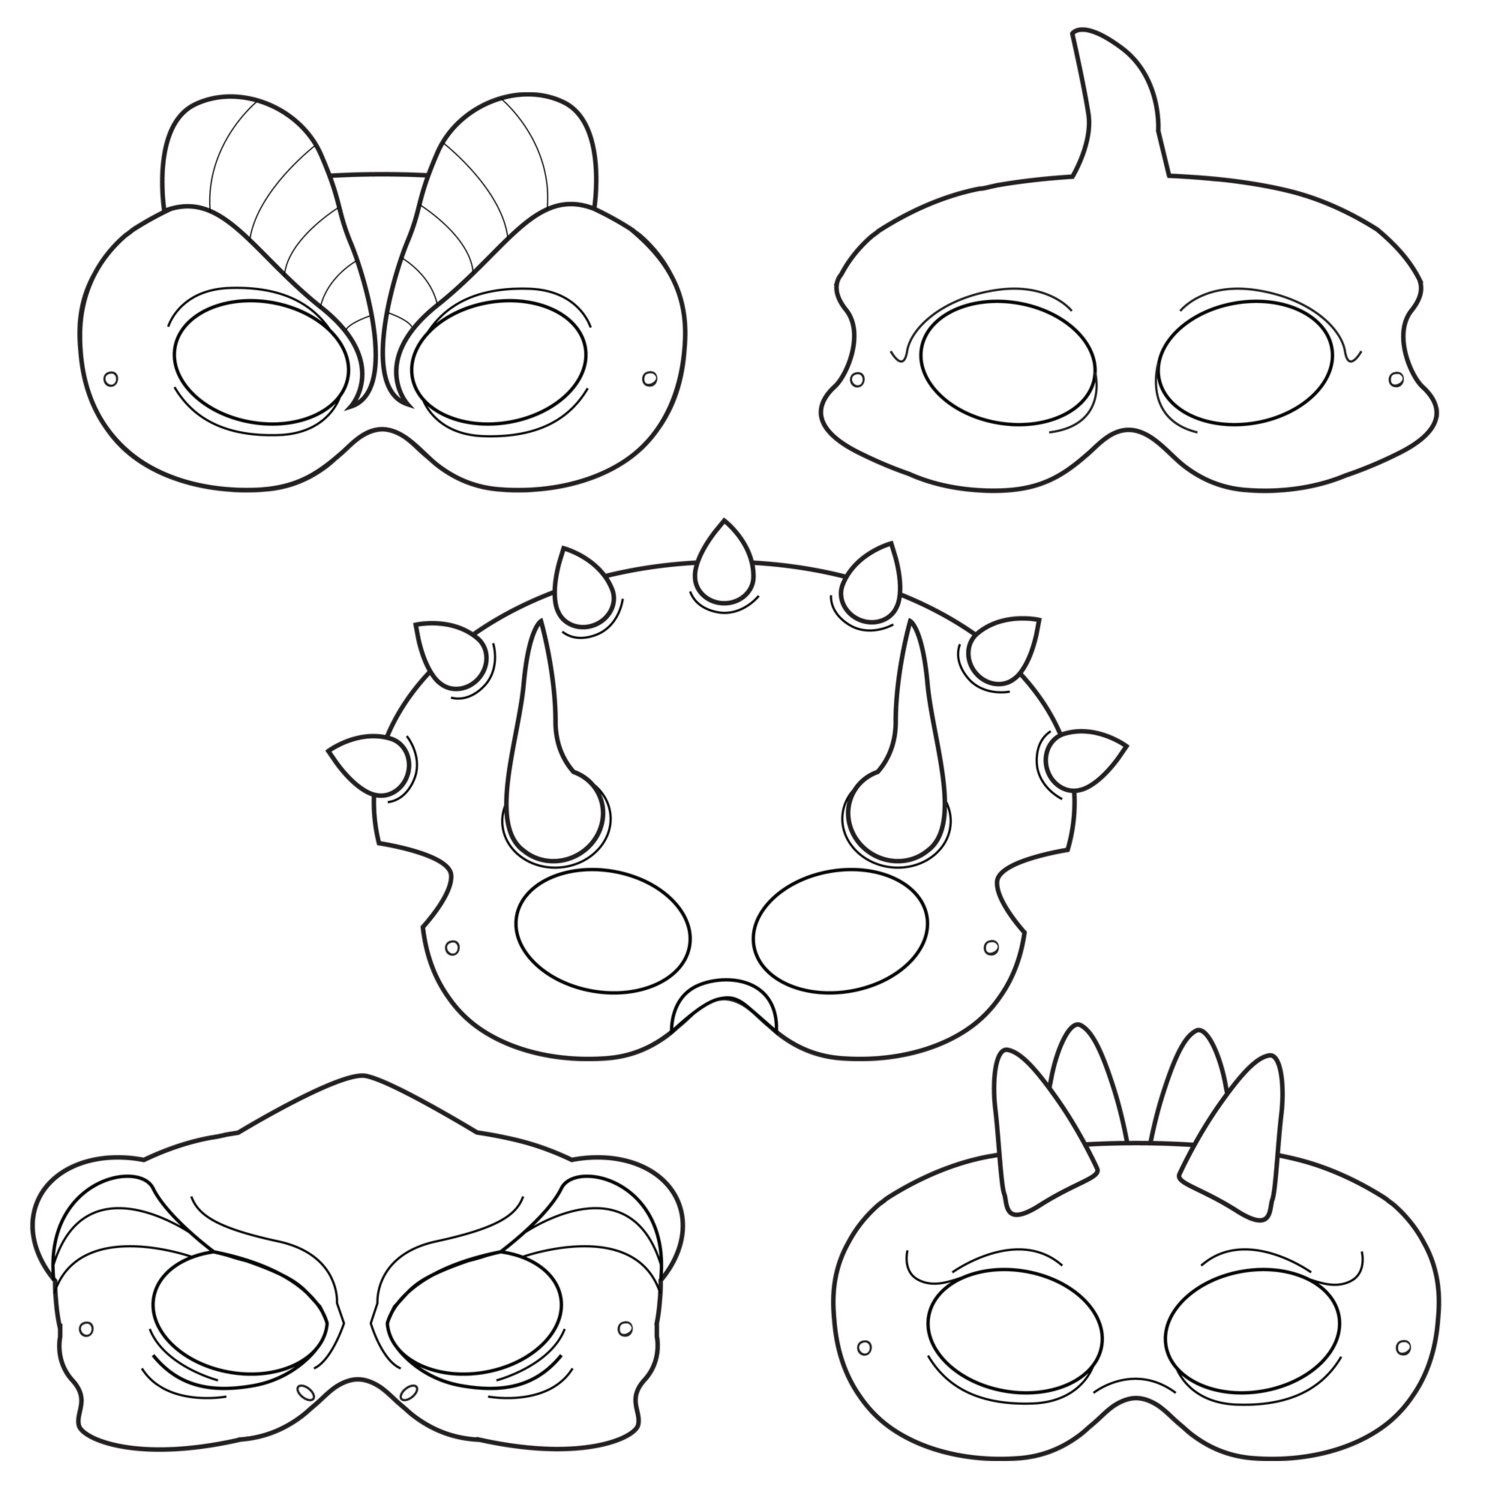 Dinosaurs Printable Coloring Masks Dinosaurhappilyafterdesigns - Free Printable Lizard Mask